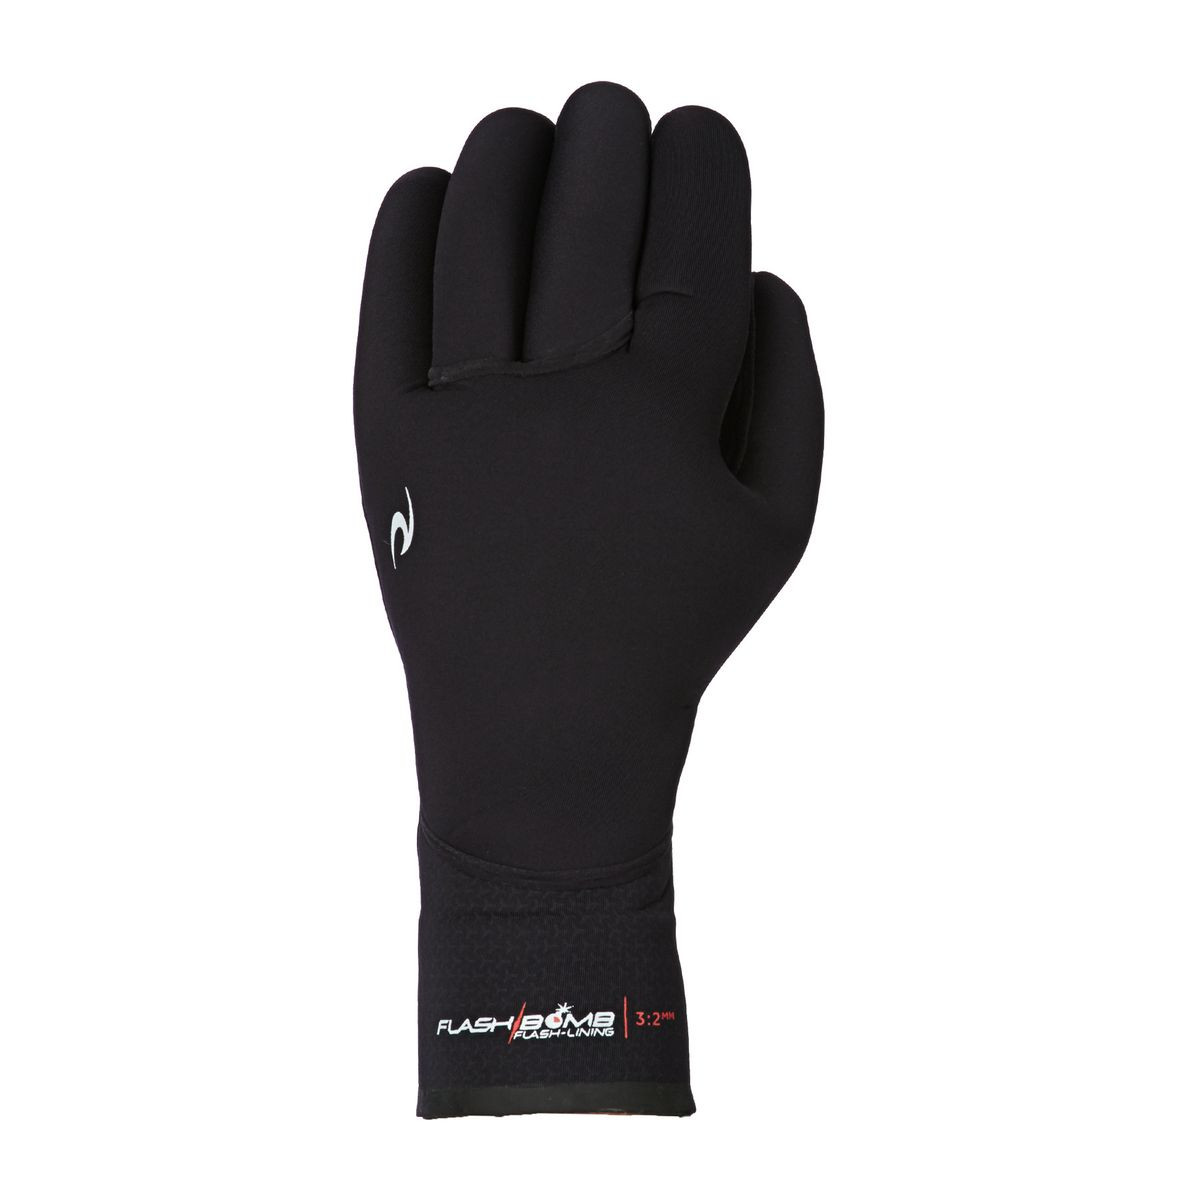 Rip Curl Flashbomb 3/2mm 5 Finger Wetsuit Gloves - Black